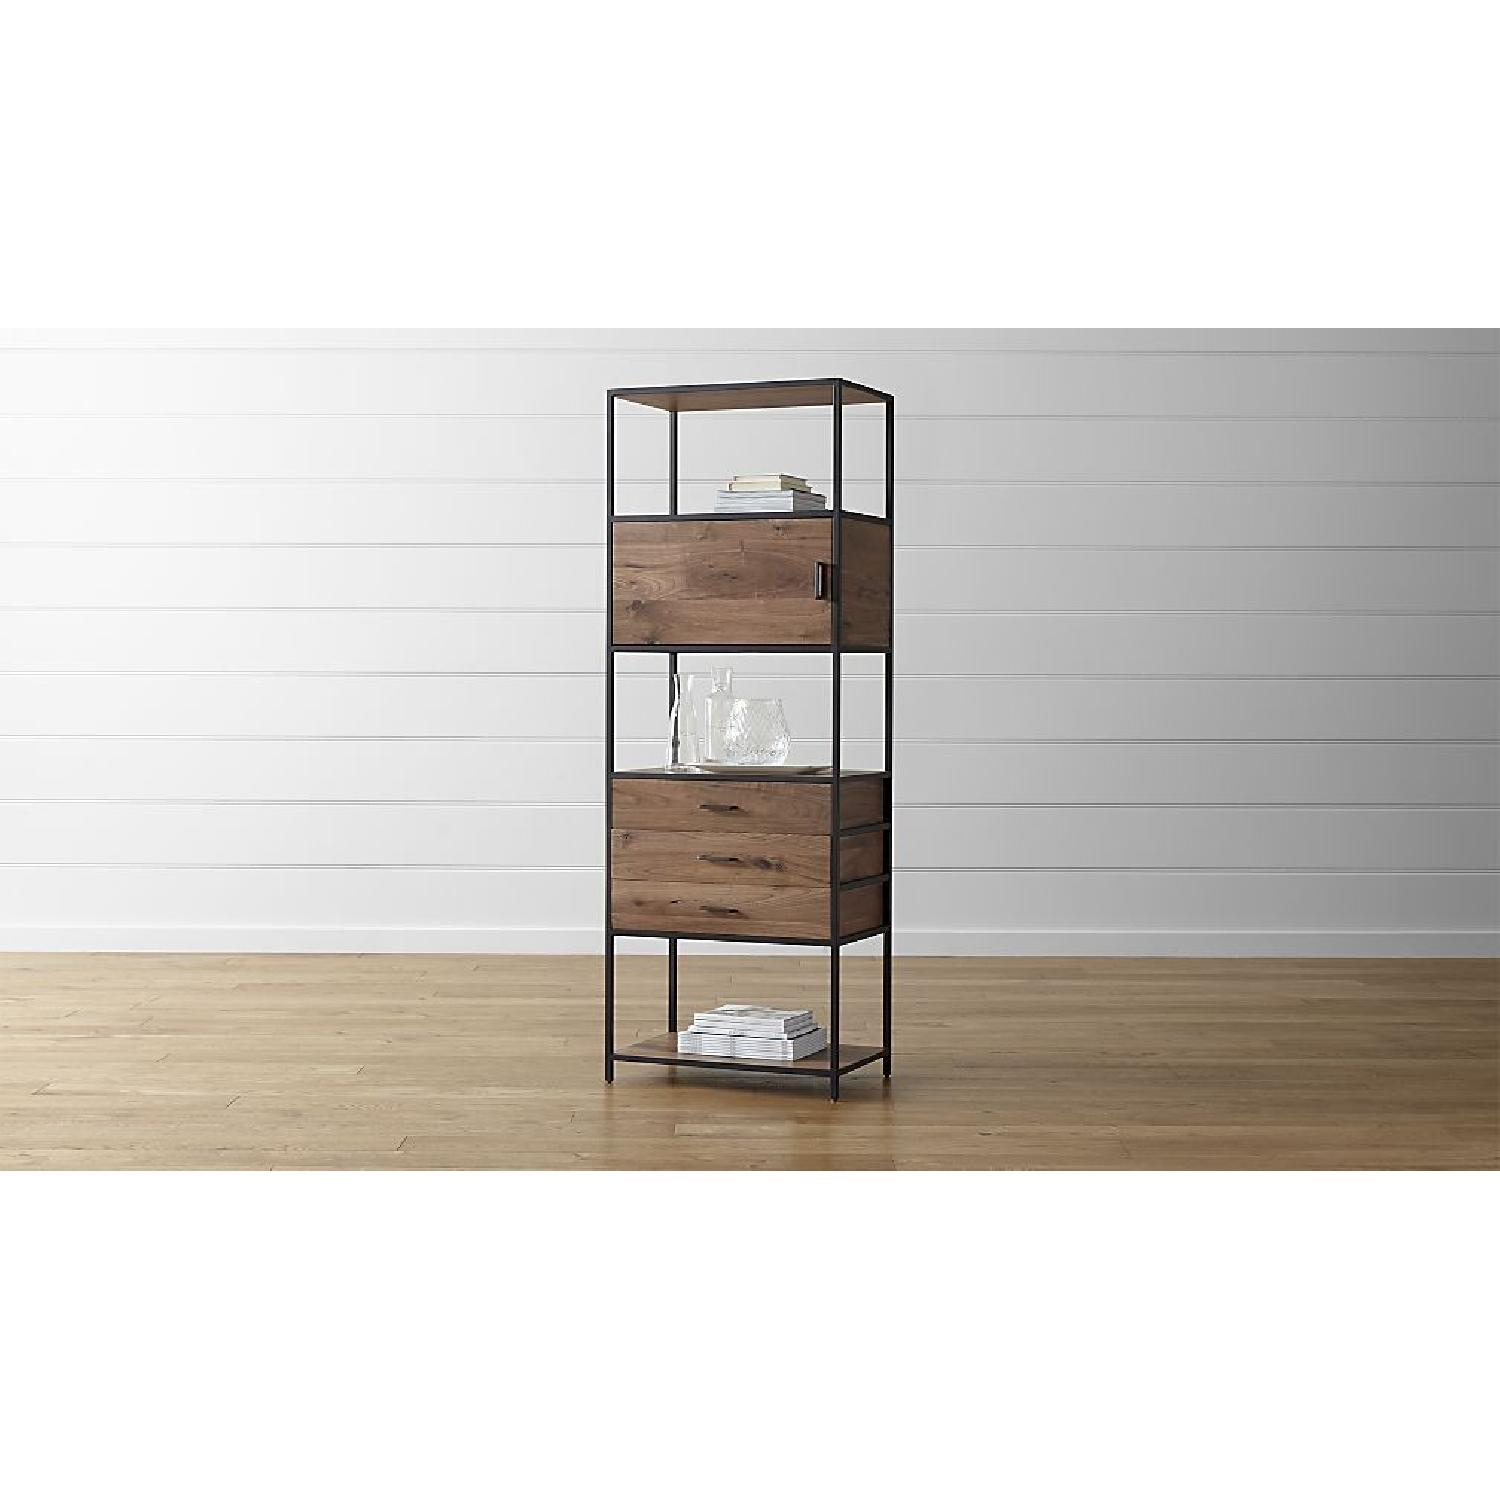 Crate & Barrel Knox Tall Storage Bookcase-1